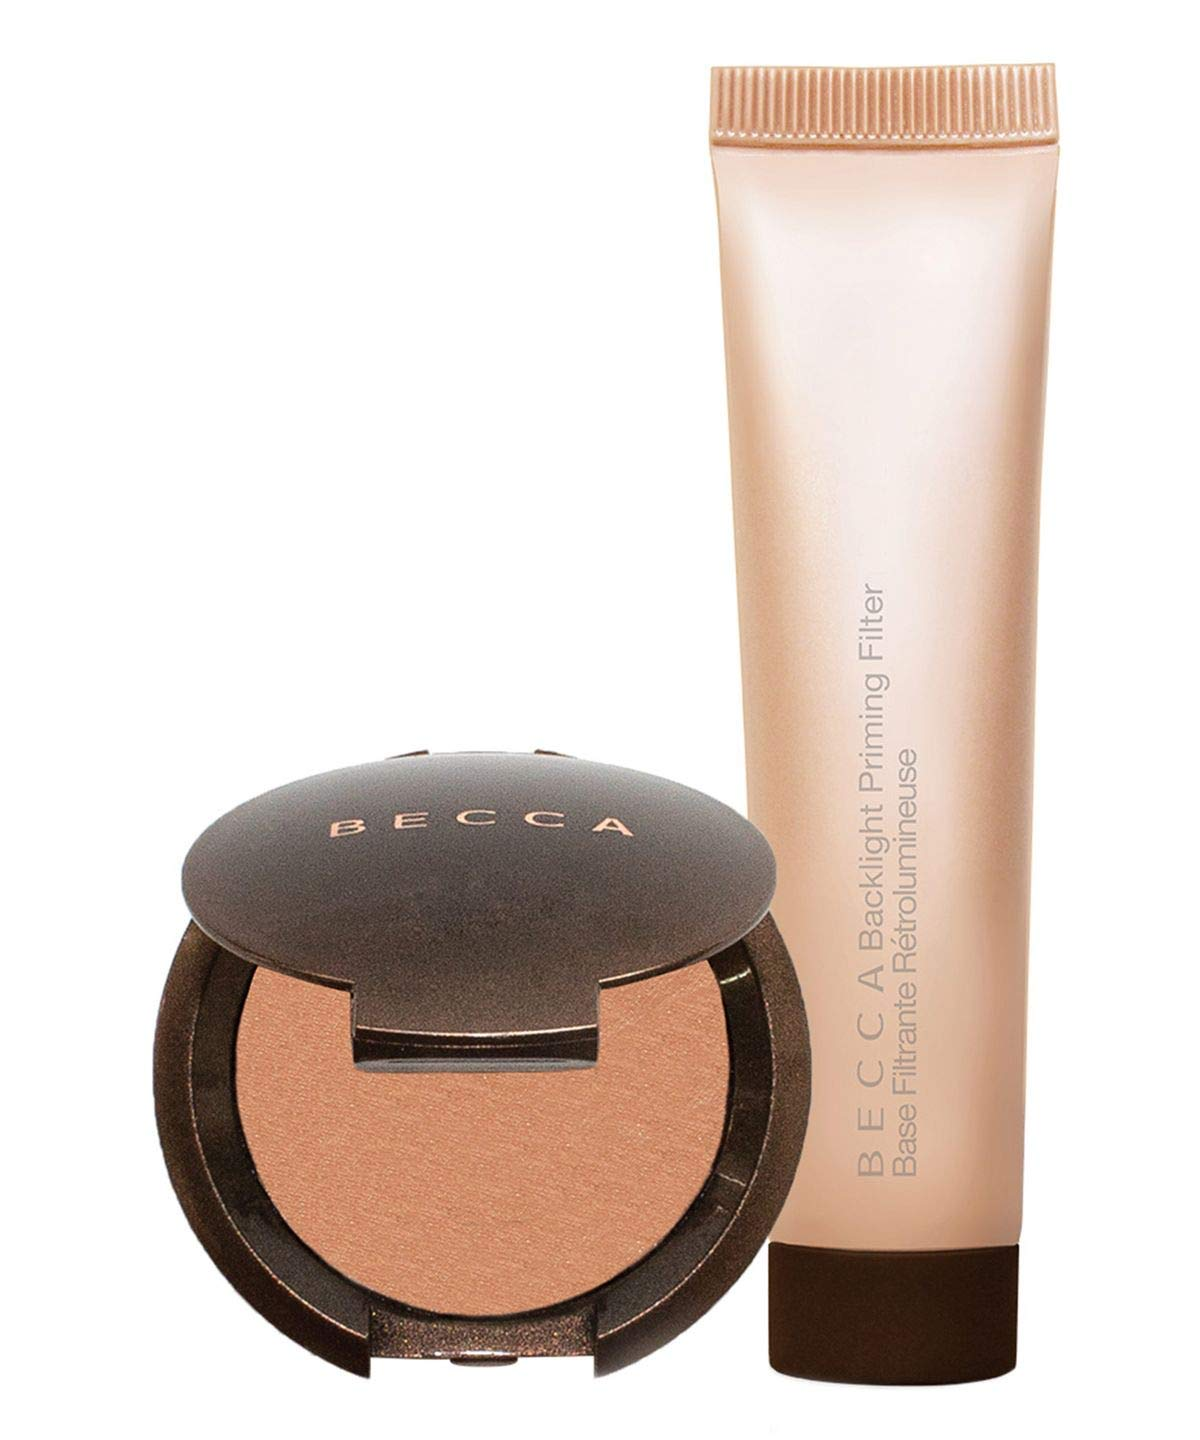 BECCA Cosmetics Summer Radiance Kit